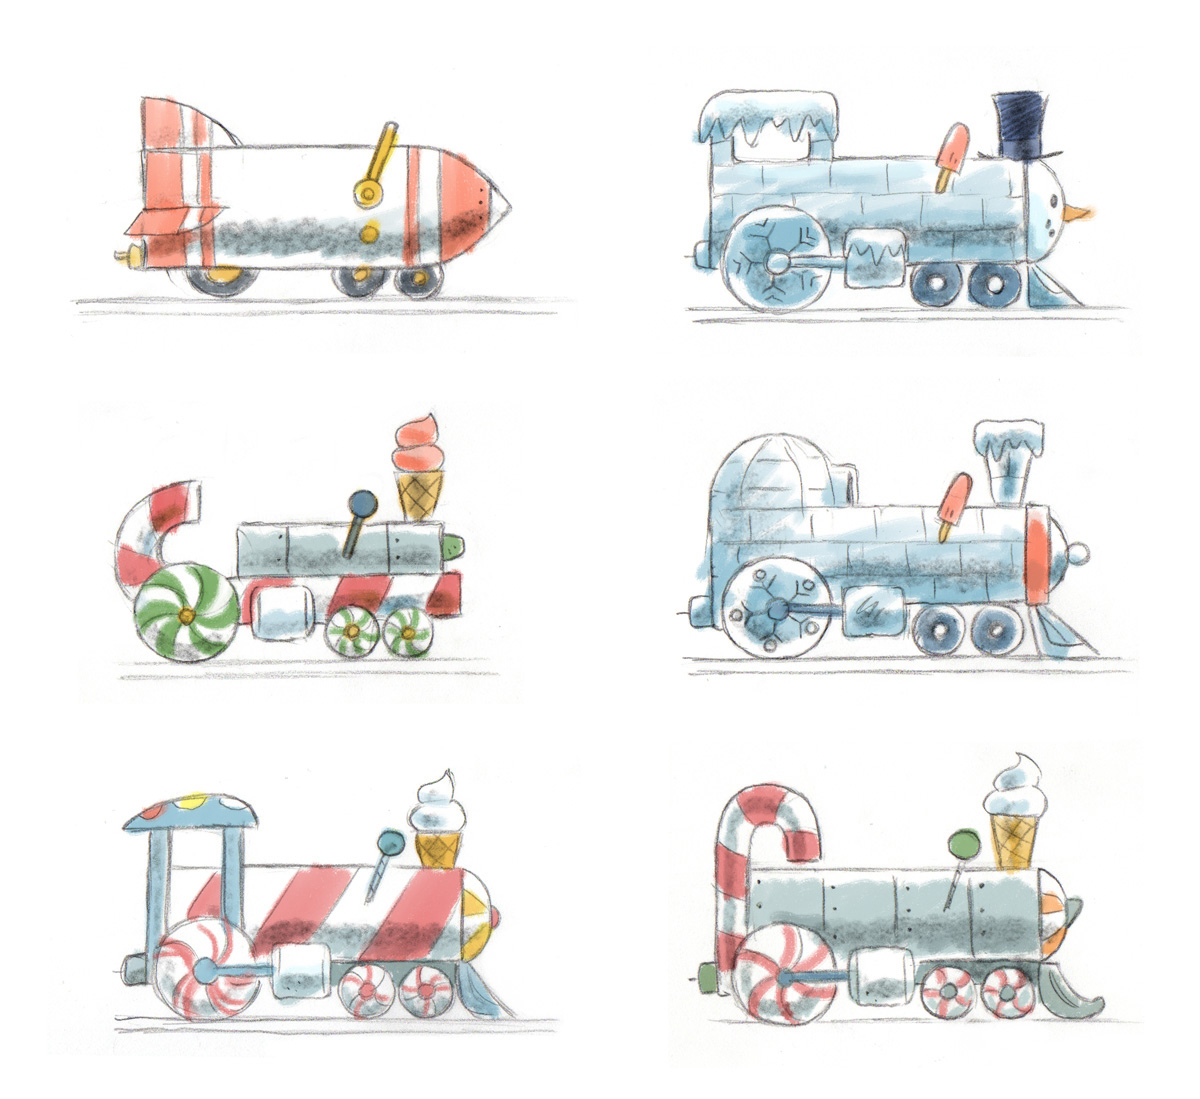 Concept sketches / Curious George Train Adventures iOS game   Agency: Smashing Ideas   Client: Houghton Mifflin Harcourt (2016)